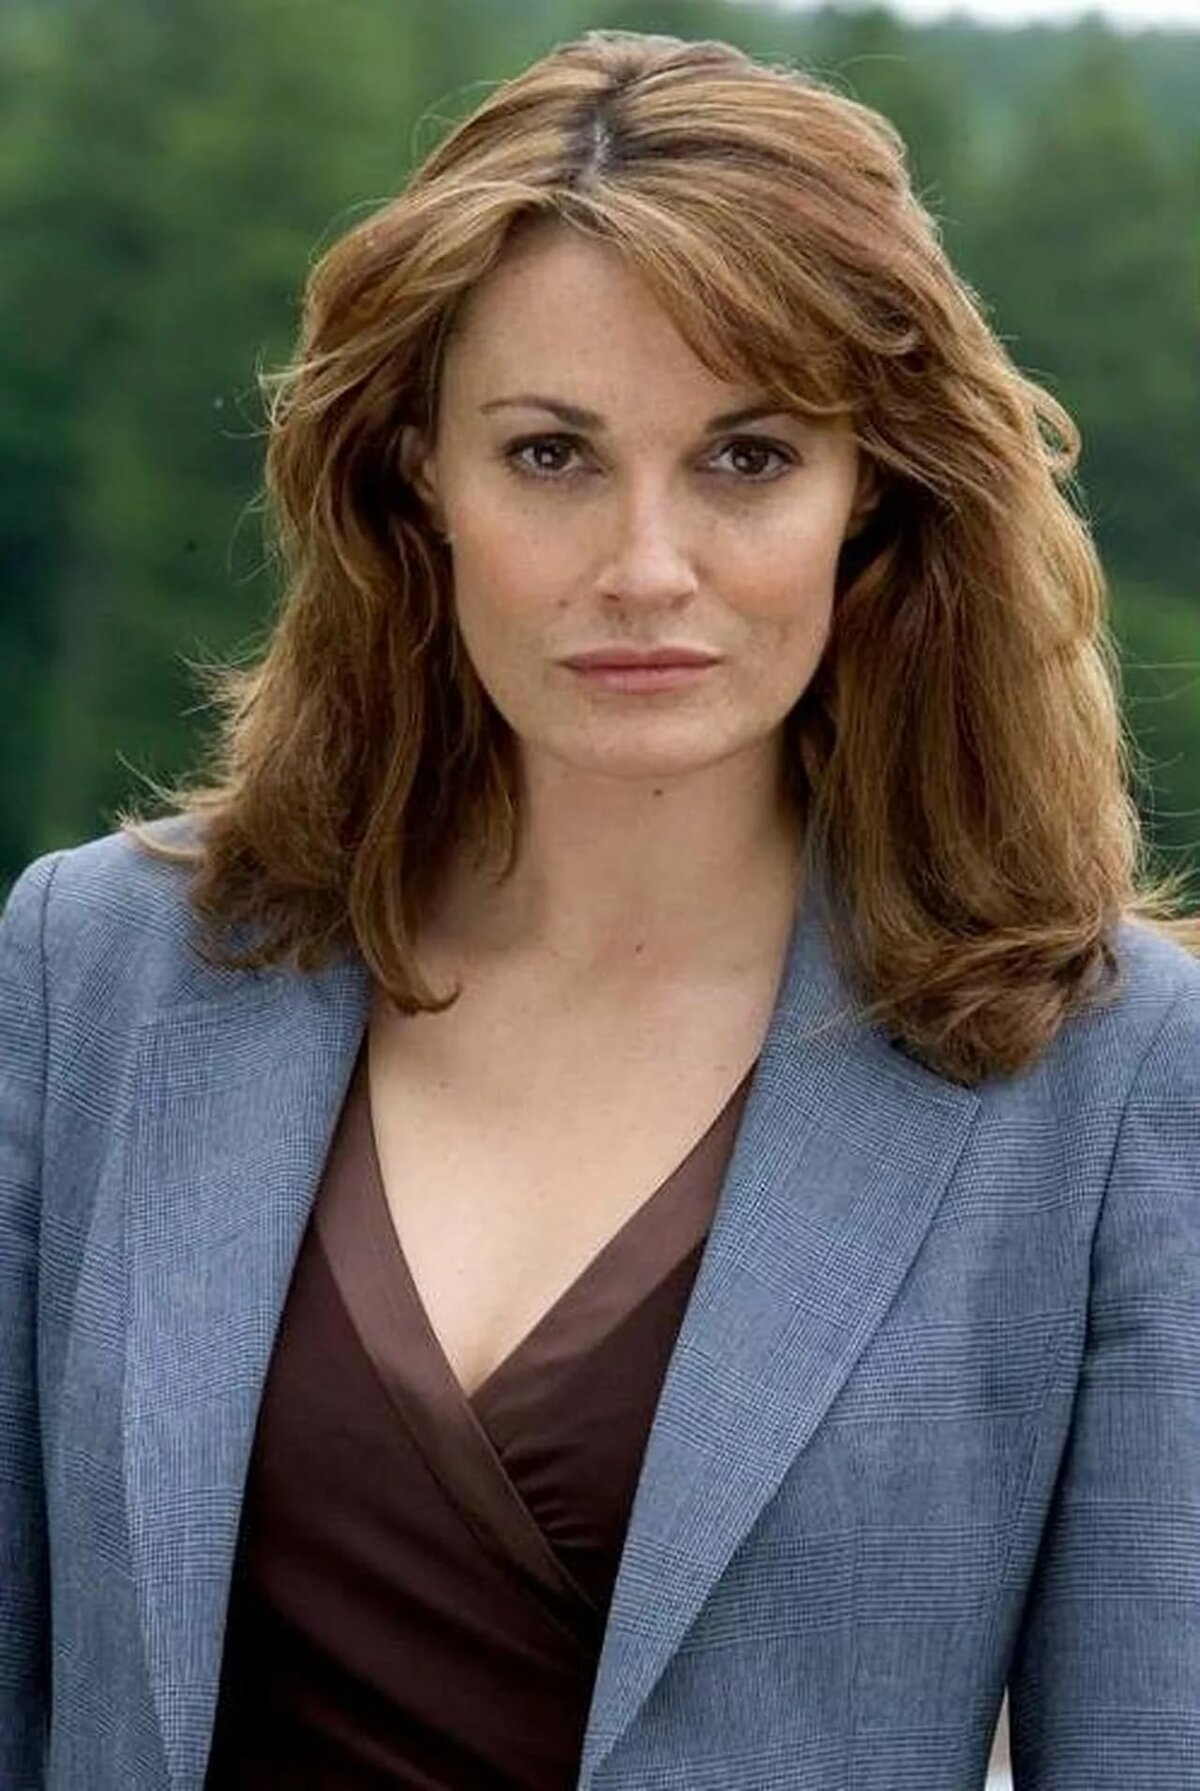 Sarah parish images, free online asian subtitled movies